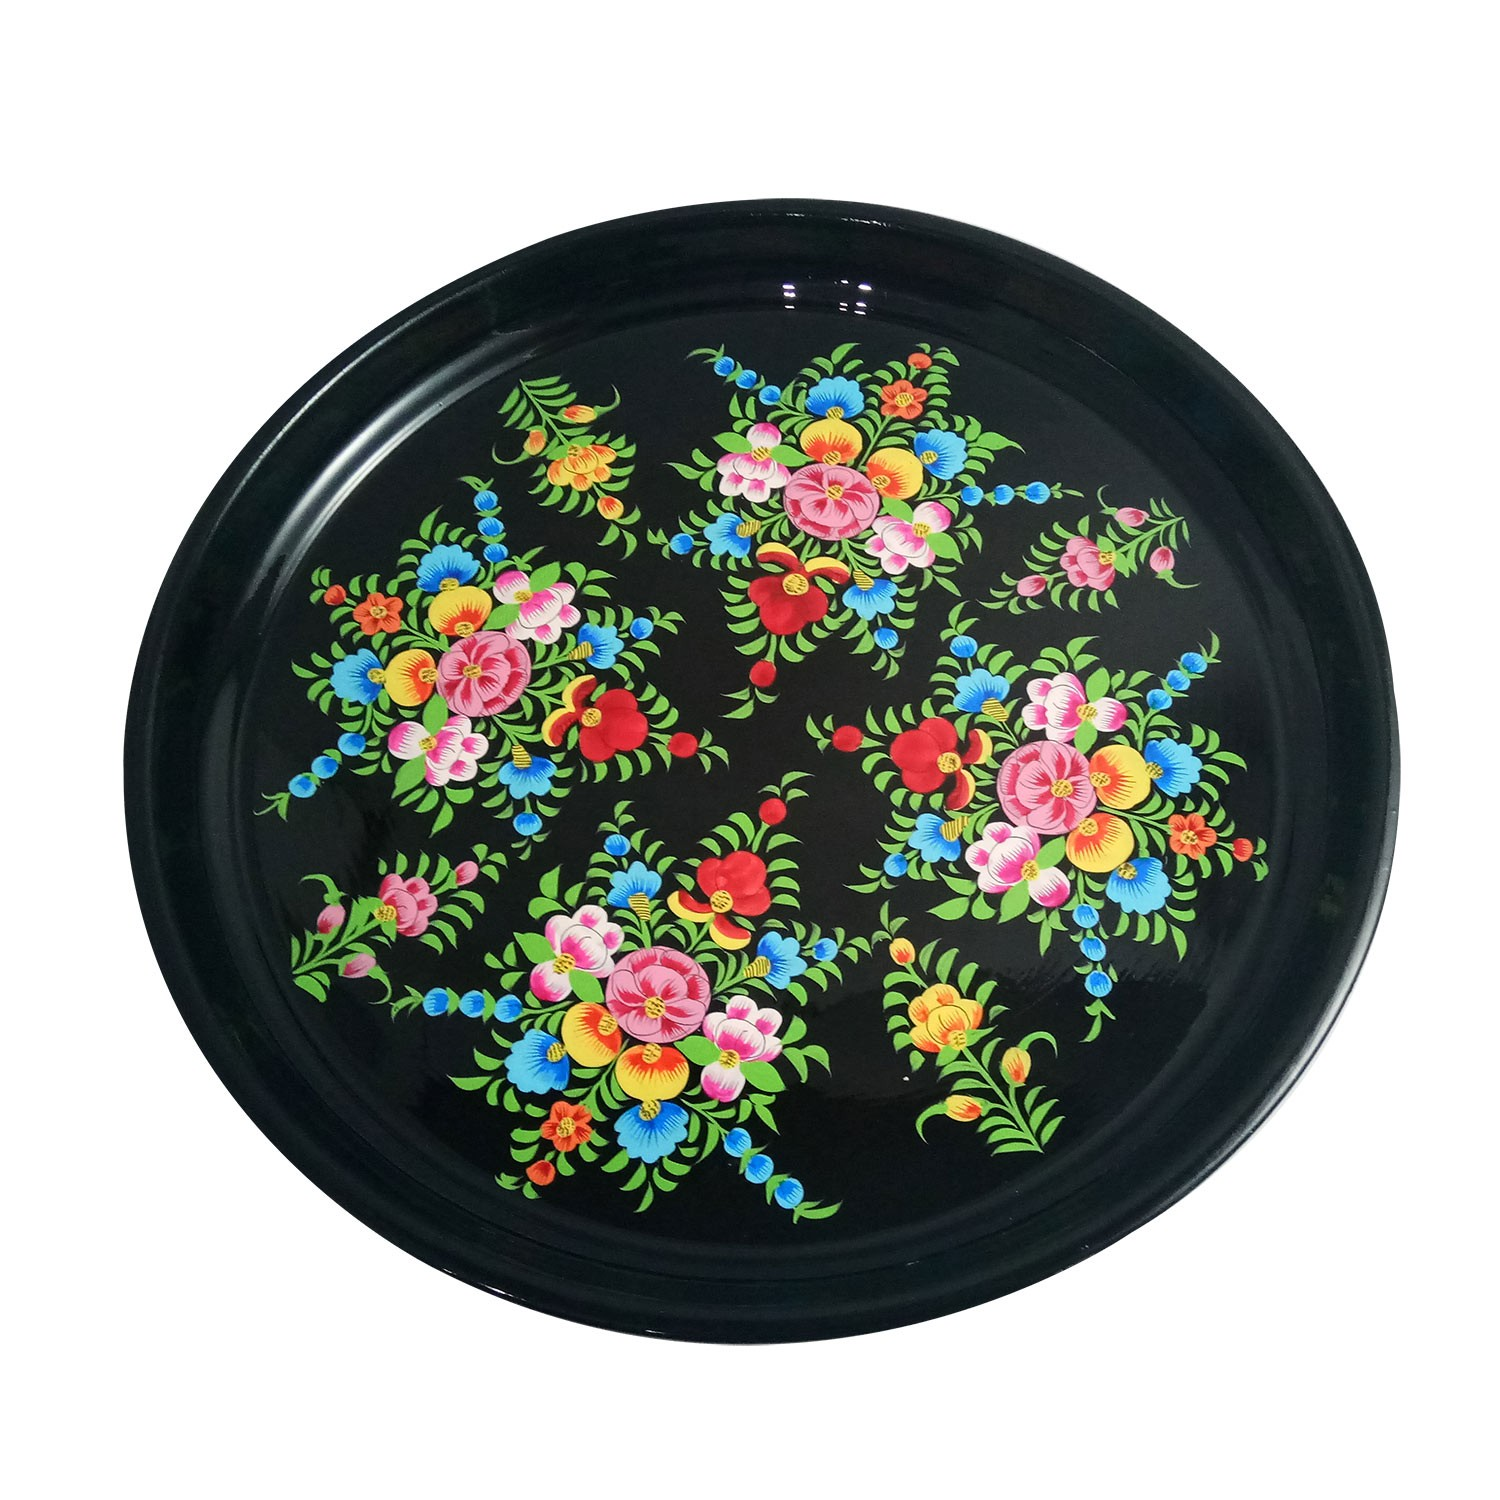 Handmade exclusive paper mache Multicolor Plate 1 pc By Rural Artisan.